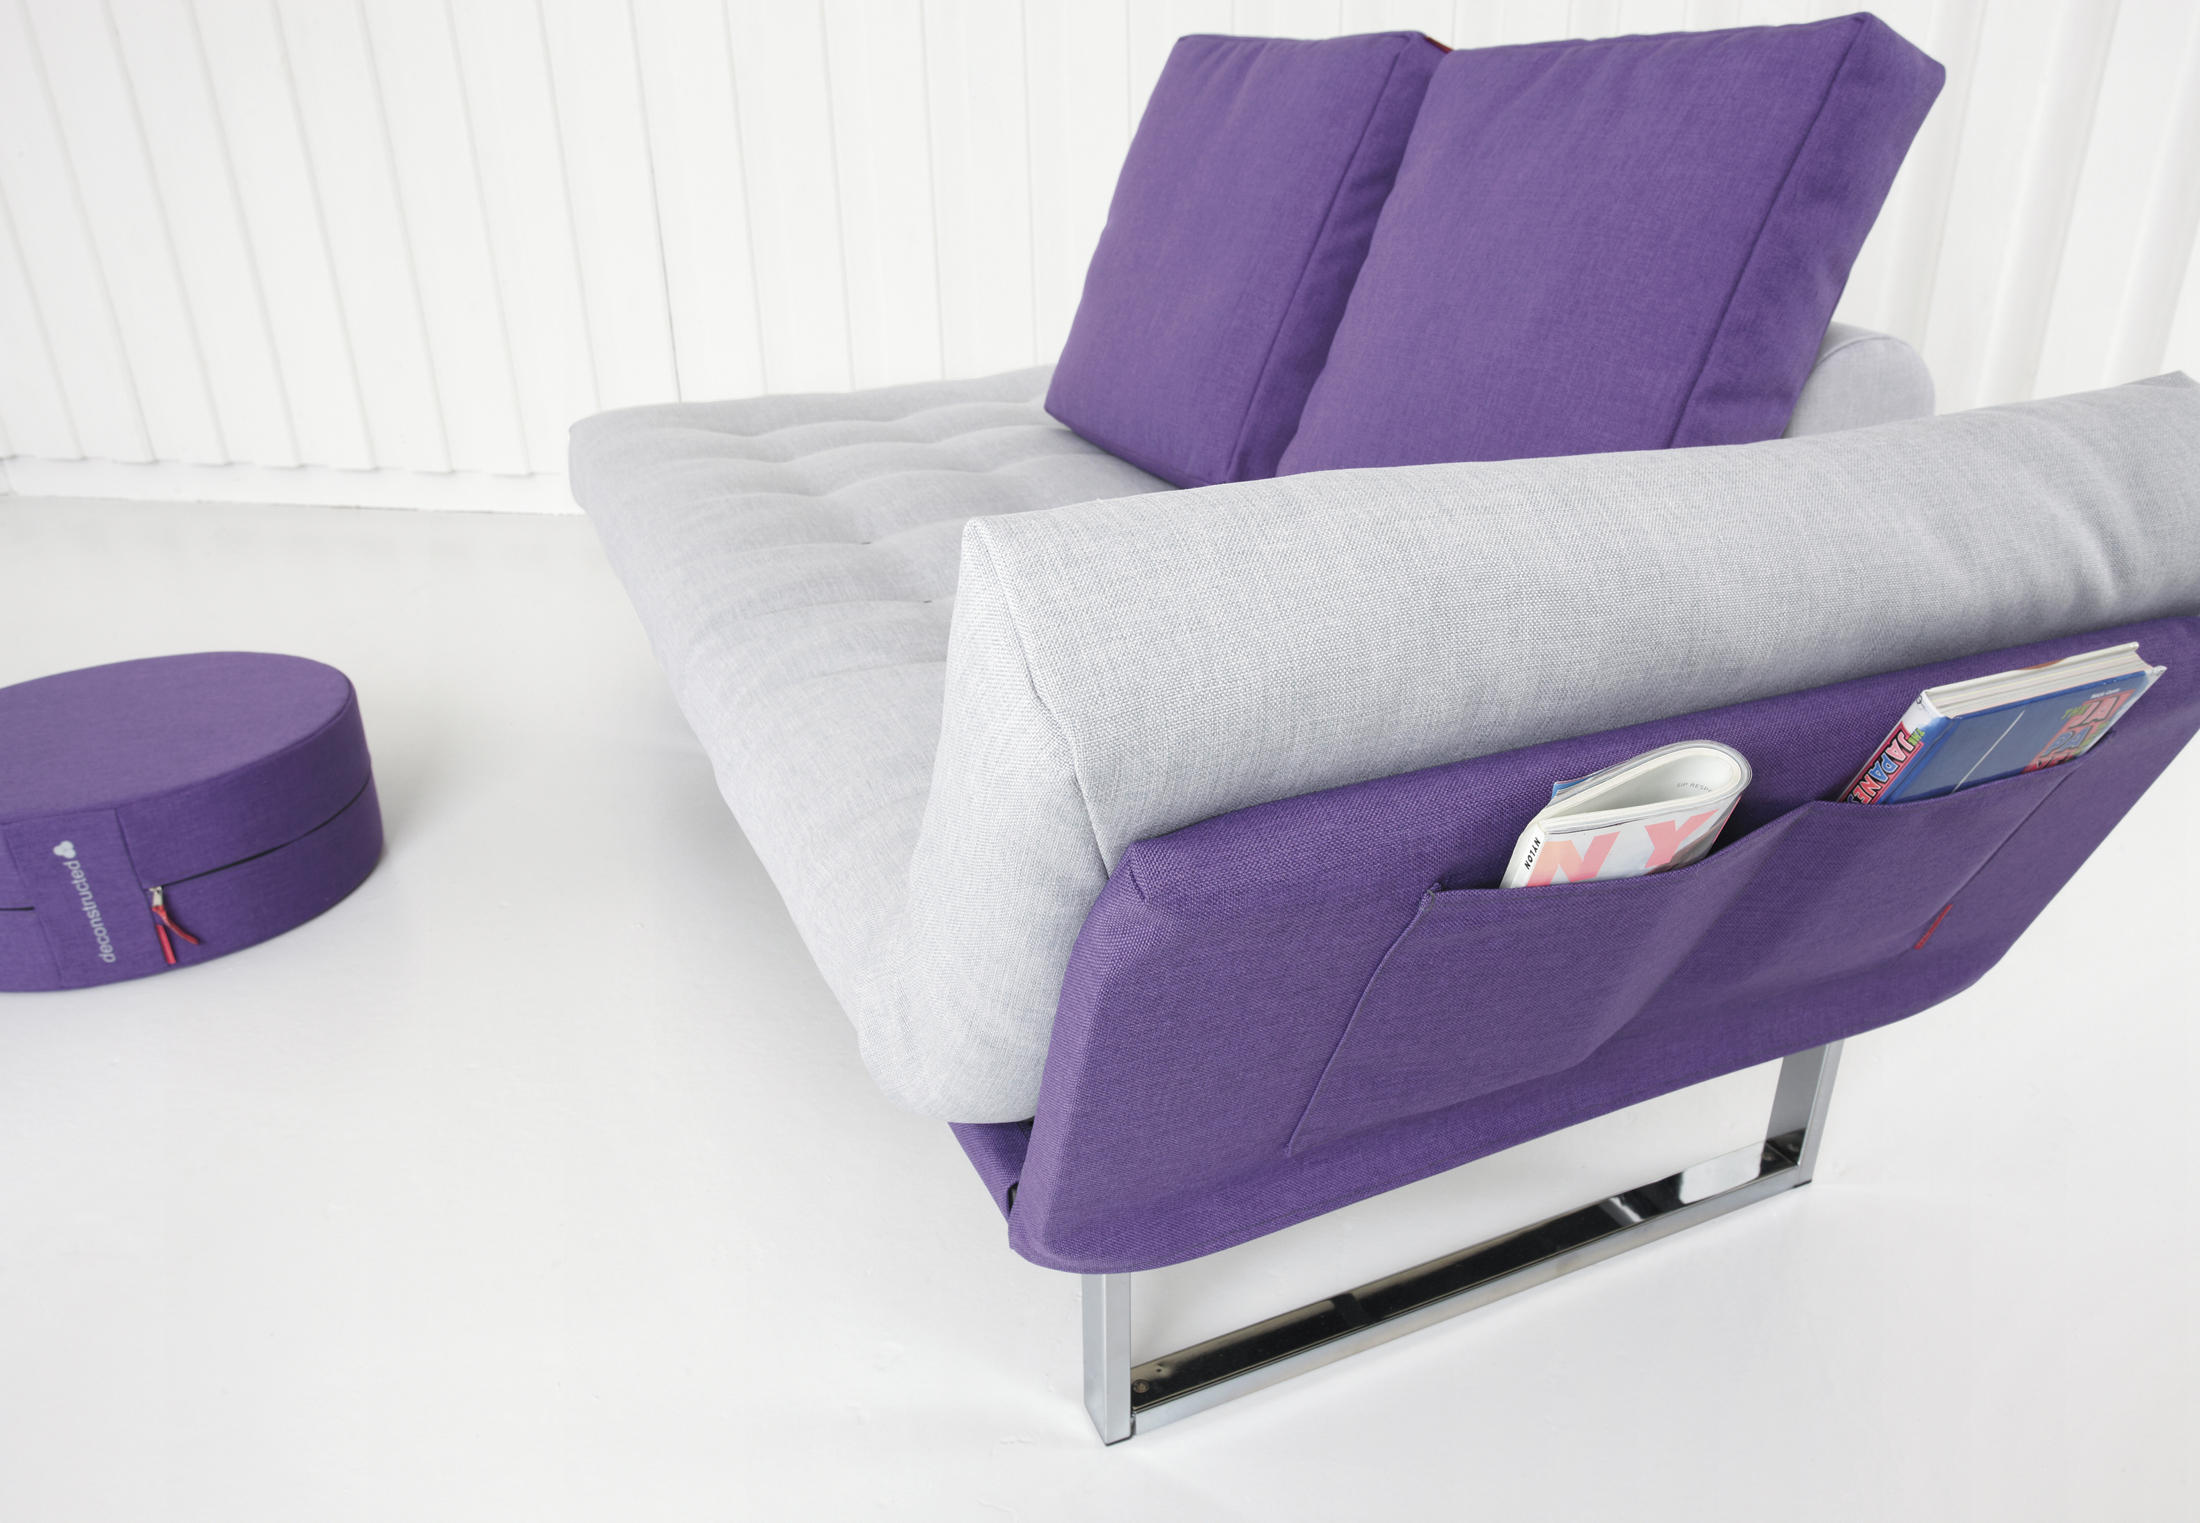 ROLLO CHROME Sofa beds from Innovation Randers